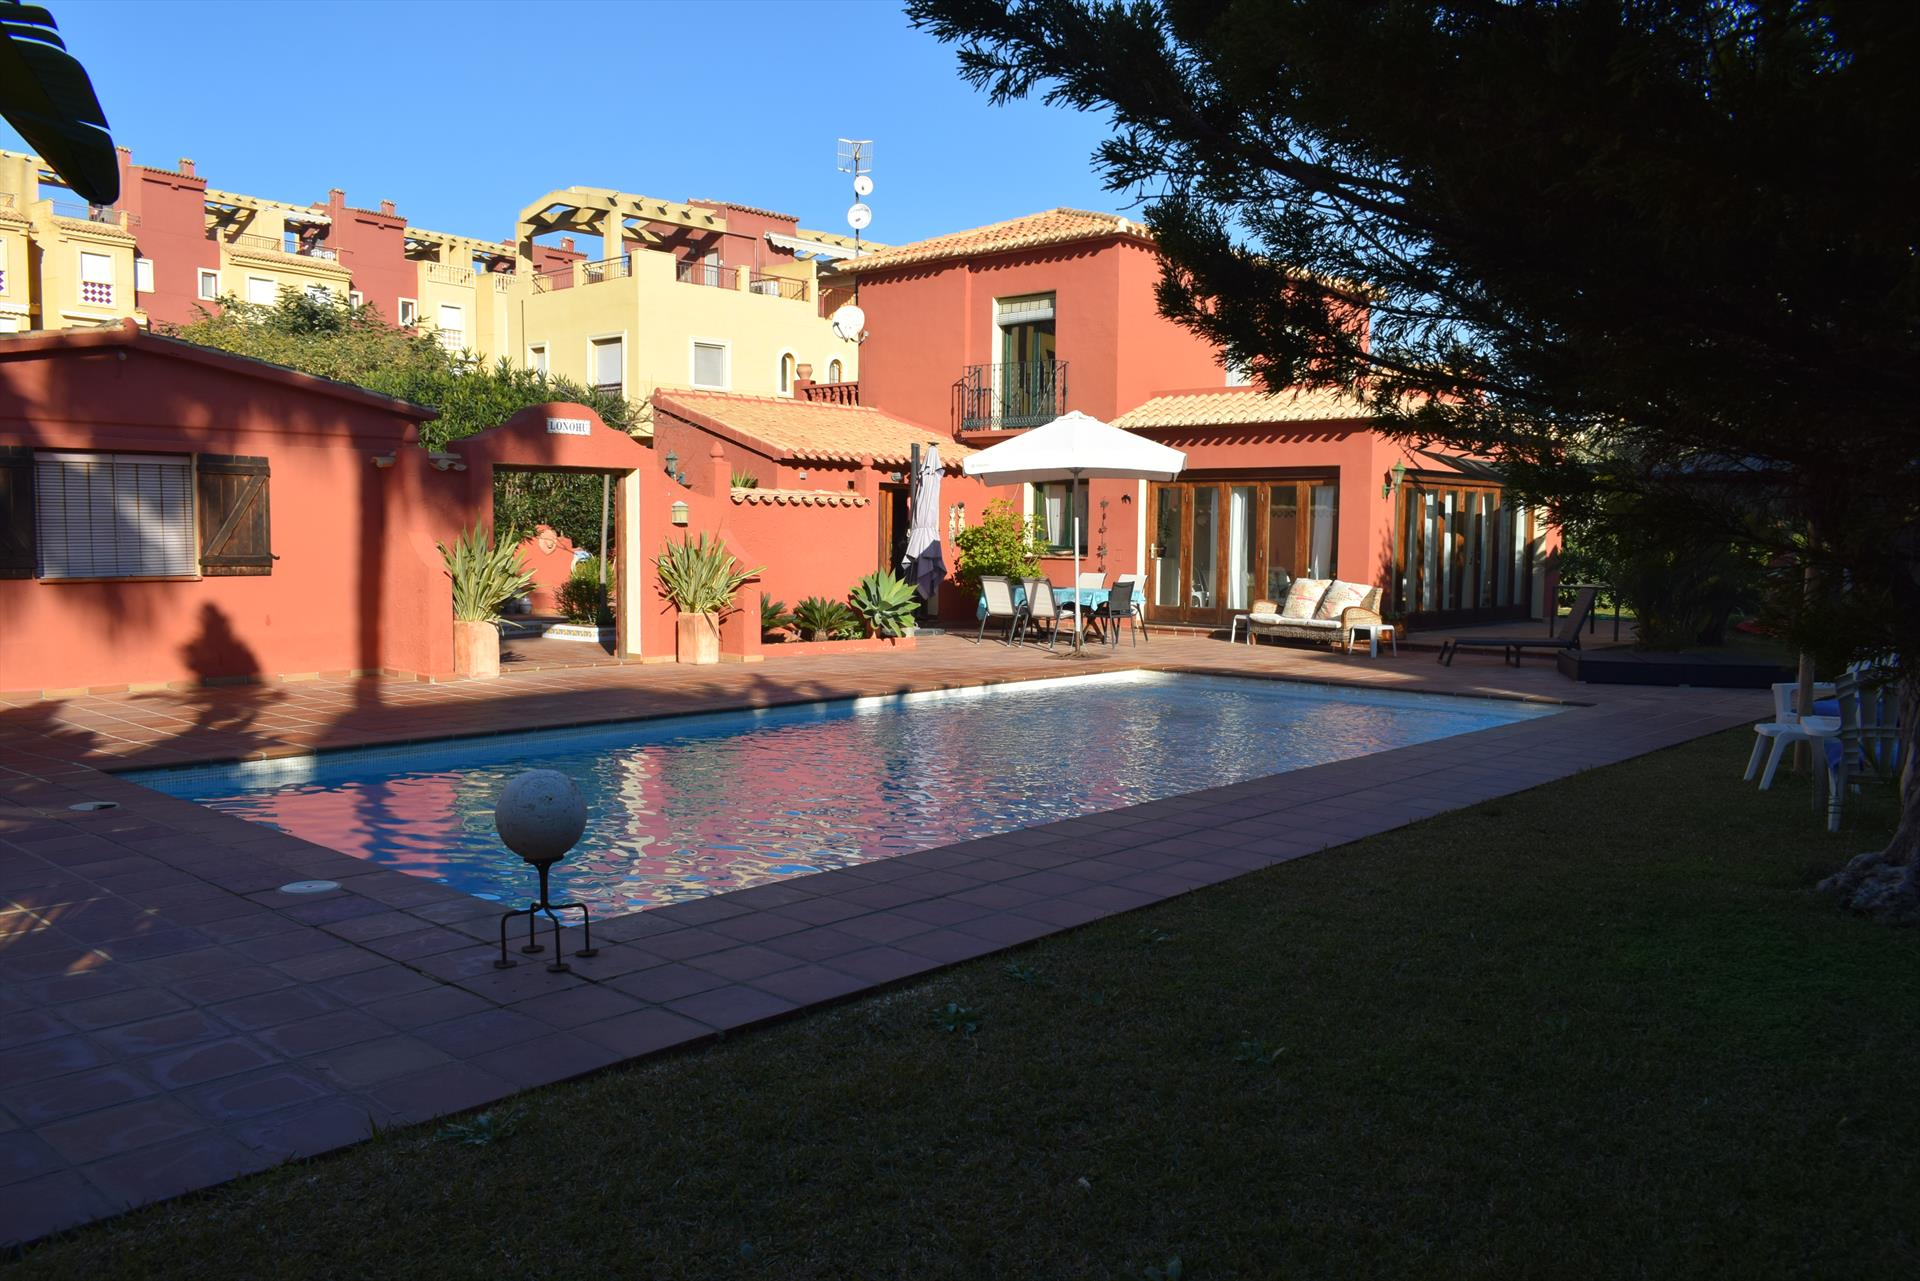 CH3205 De la Piscina a la Playa de Arena, Wonderful and cheerful holiday house in Denia, on the Costa Blanca, Spain  with private pool for 7 persons.....